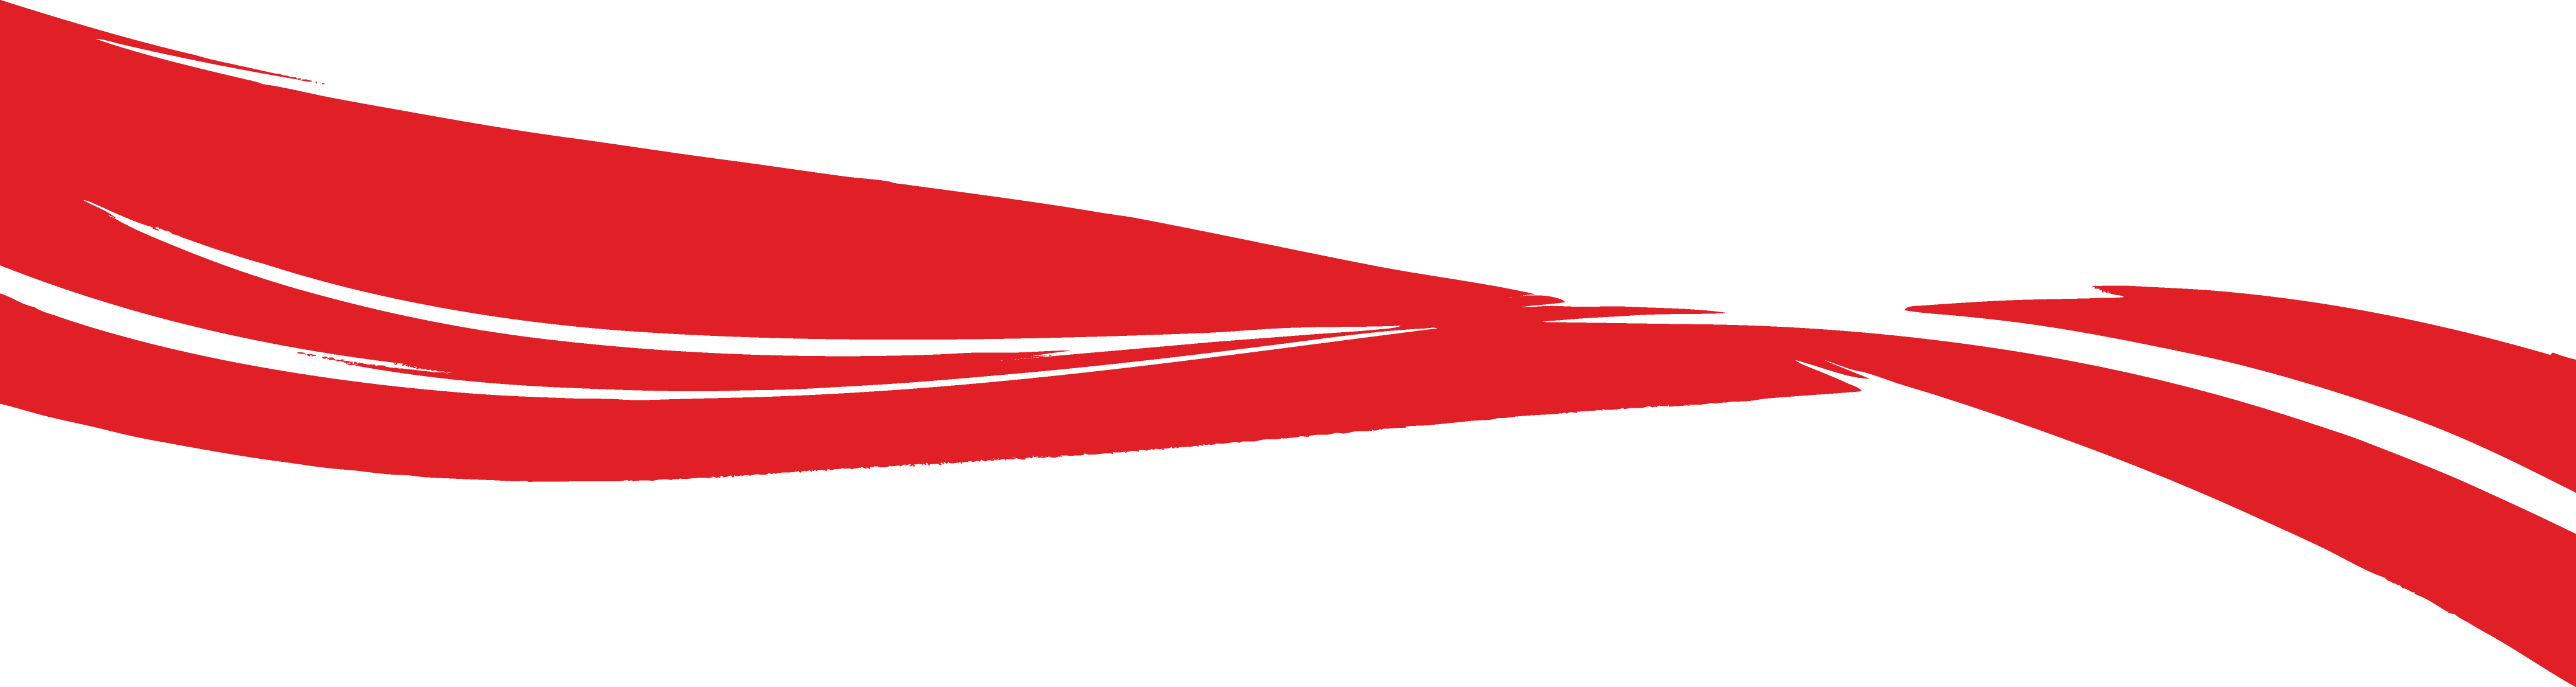 Swooshes vector red. Free swoosh download clip